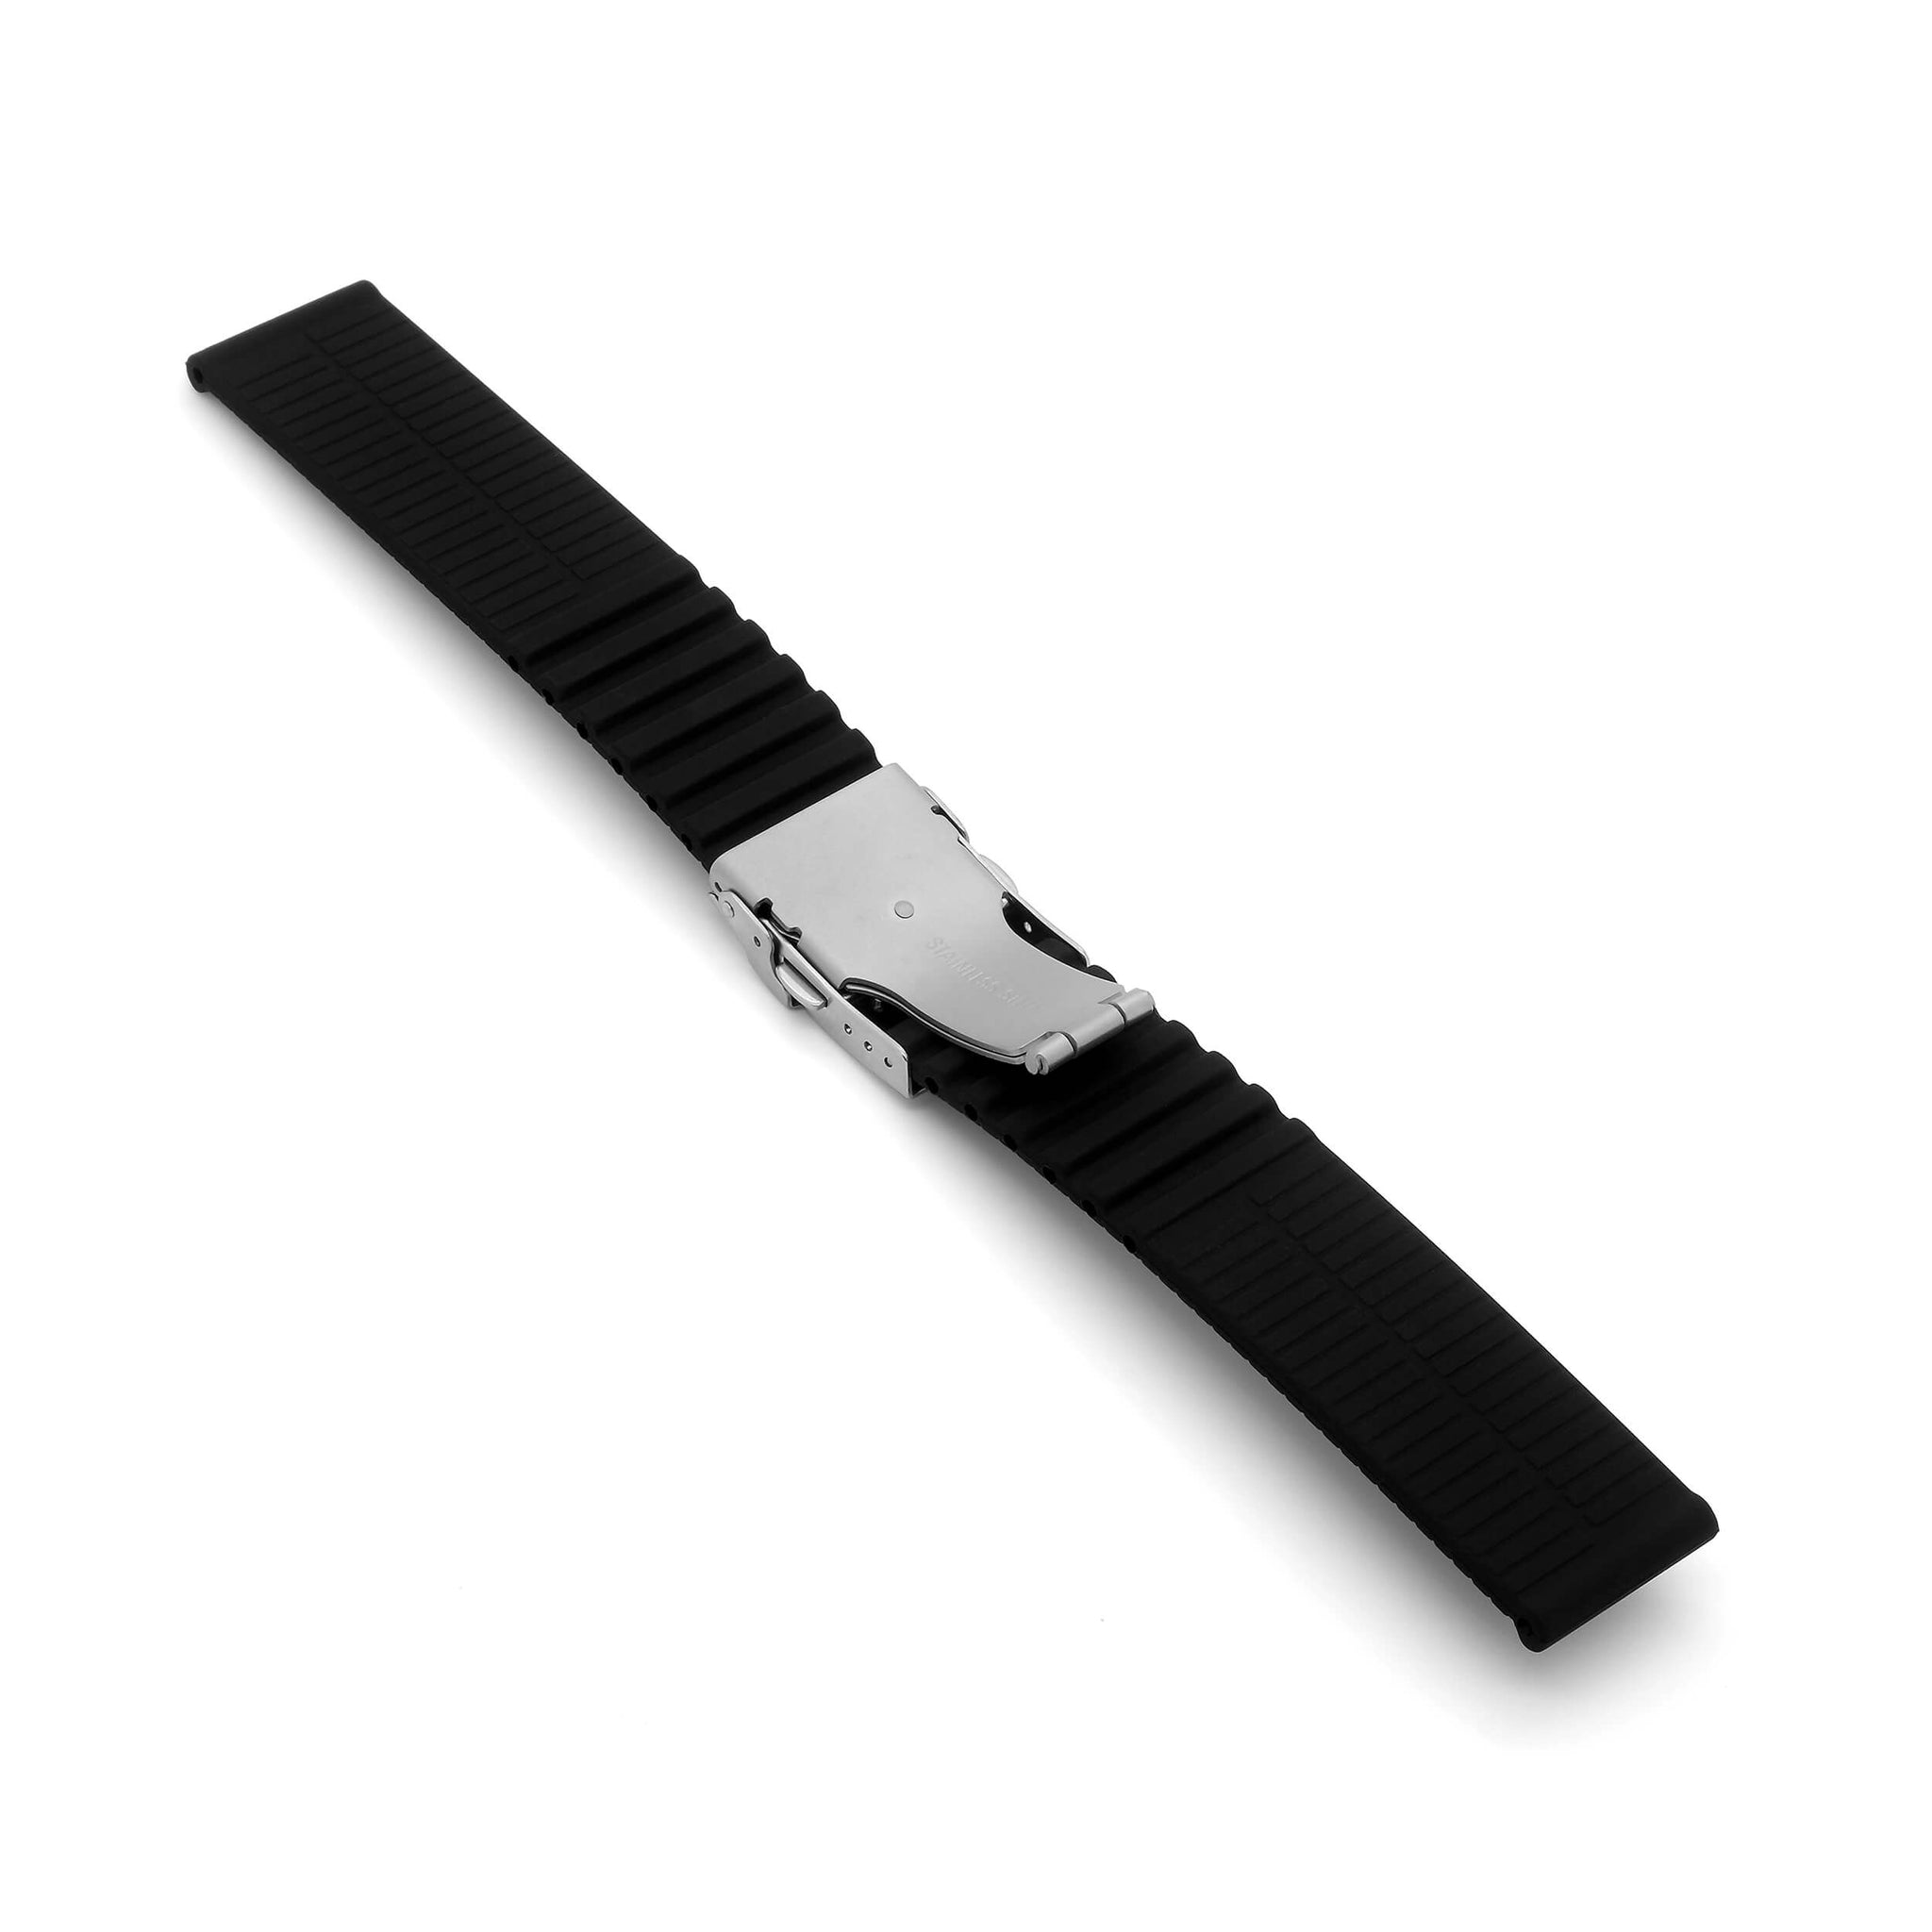 'TT Mk2' Rubber Deployment Watch Strap (Black)